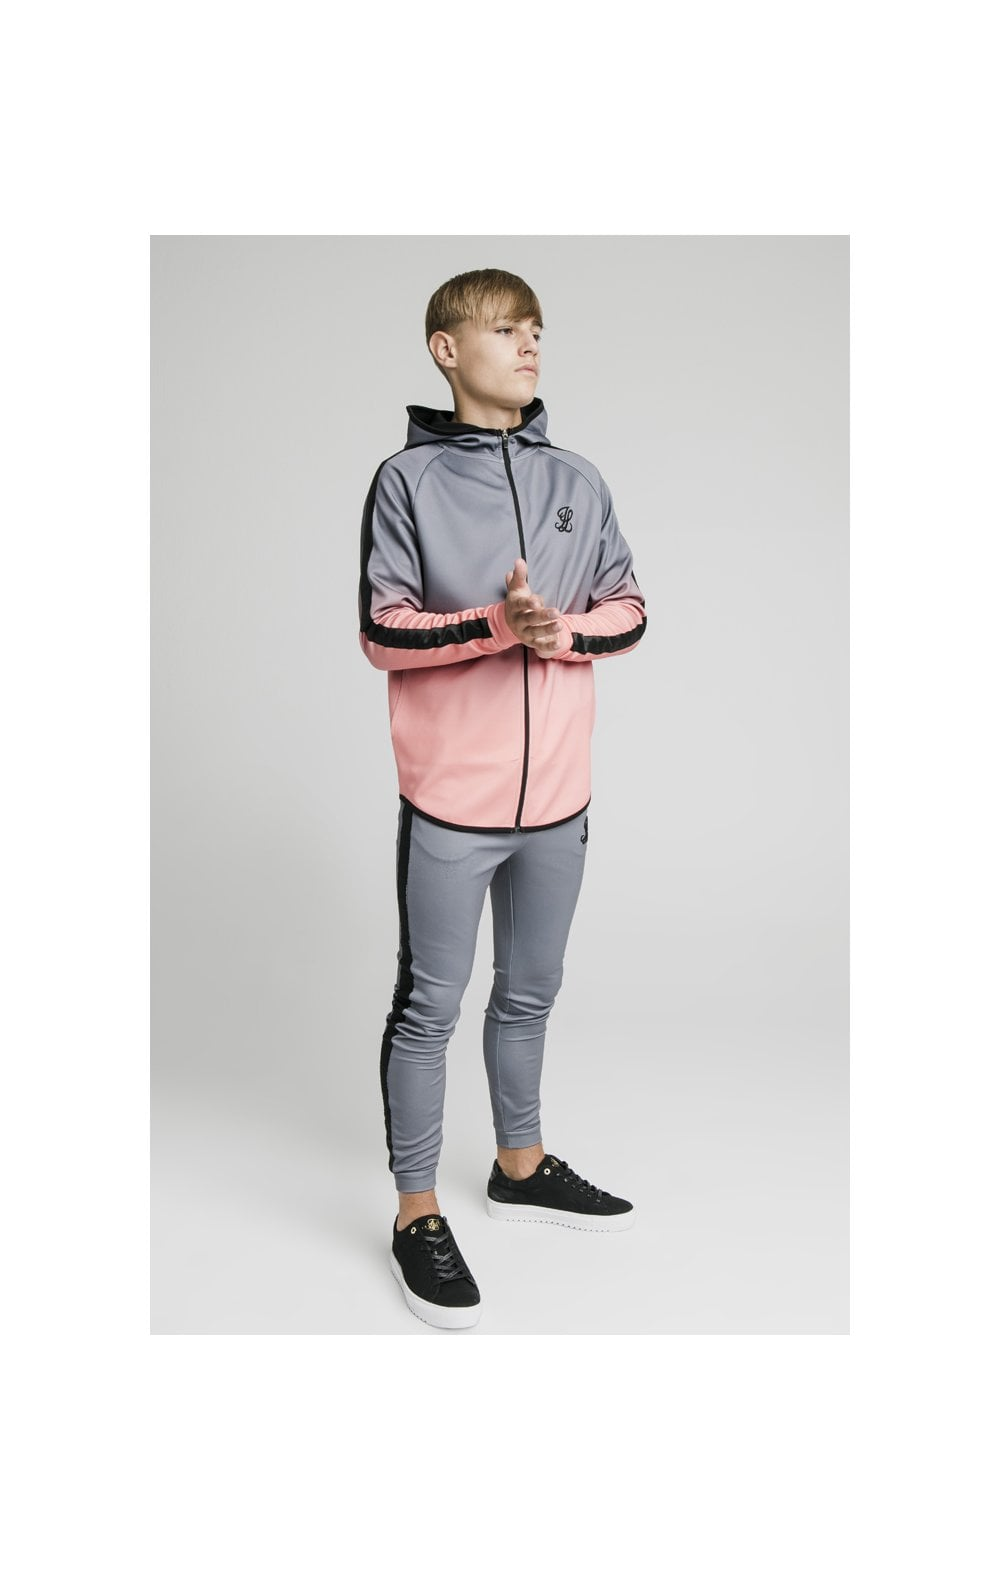 Load image into Gallery viewer, Illusive London Athlete Zip Through Fade Hoodie - Grey & Peach (2)